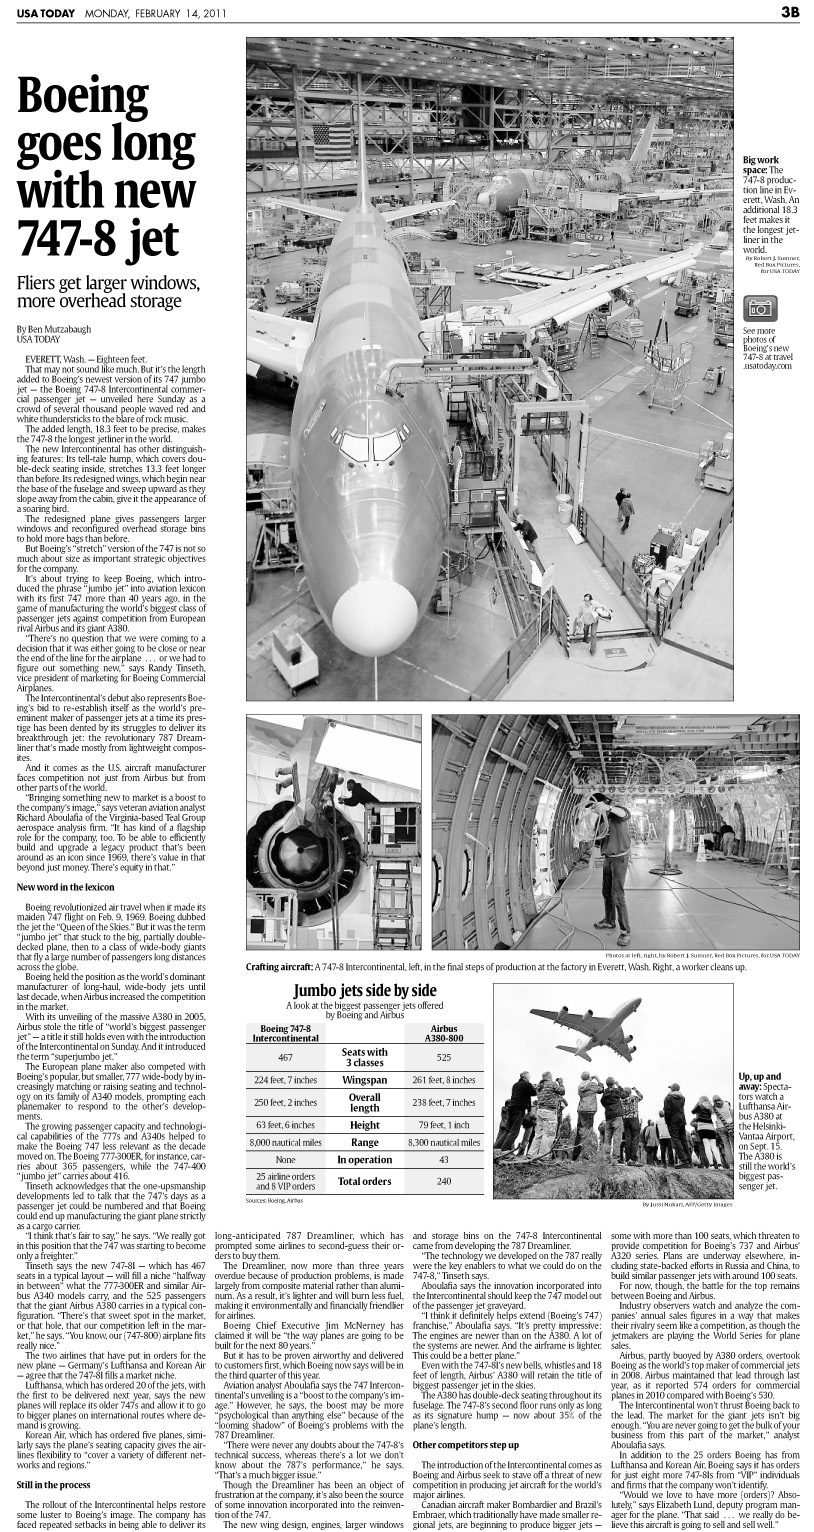 USA Today page featuring photography by Rob Sumner / Red Box Pictures